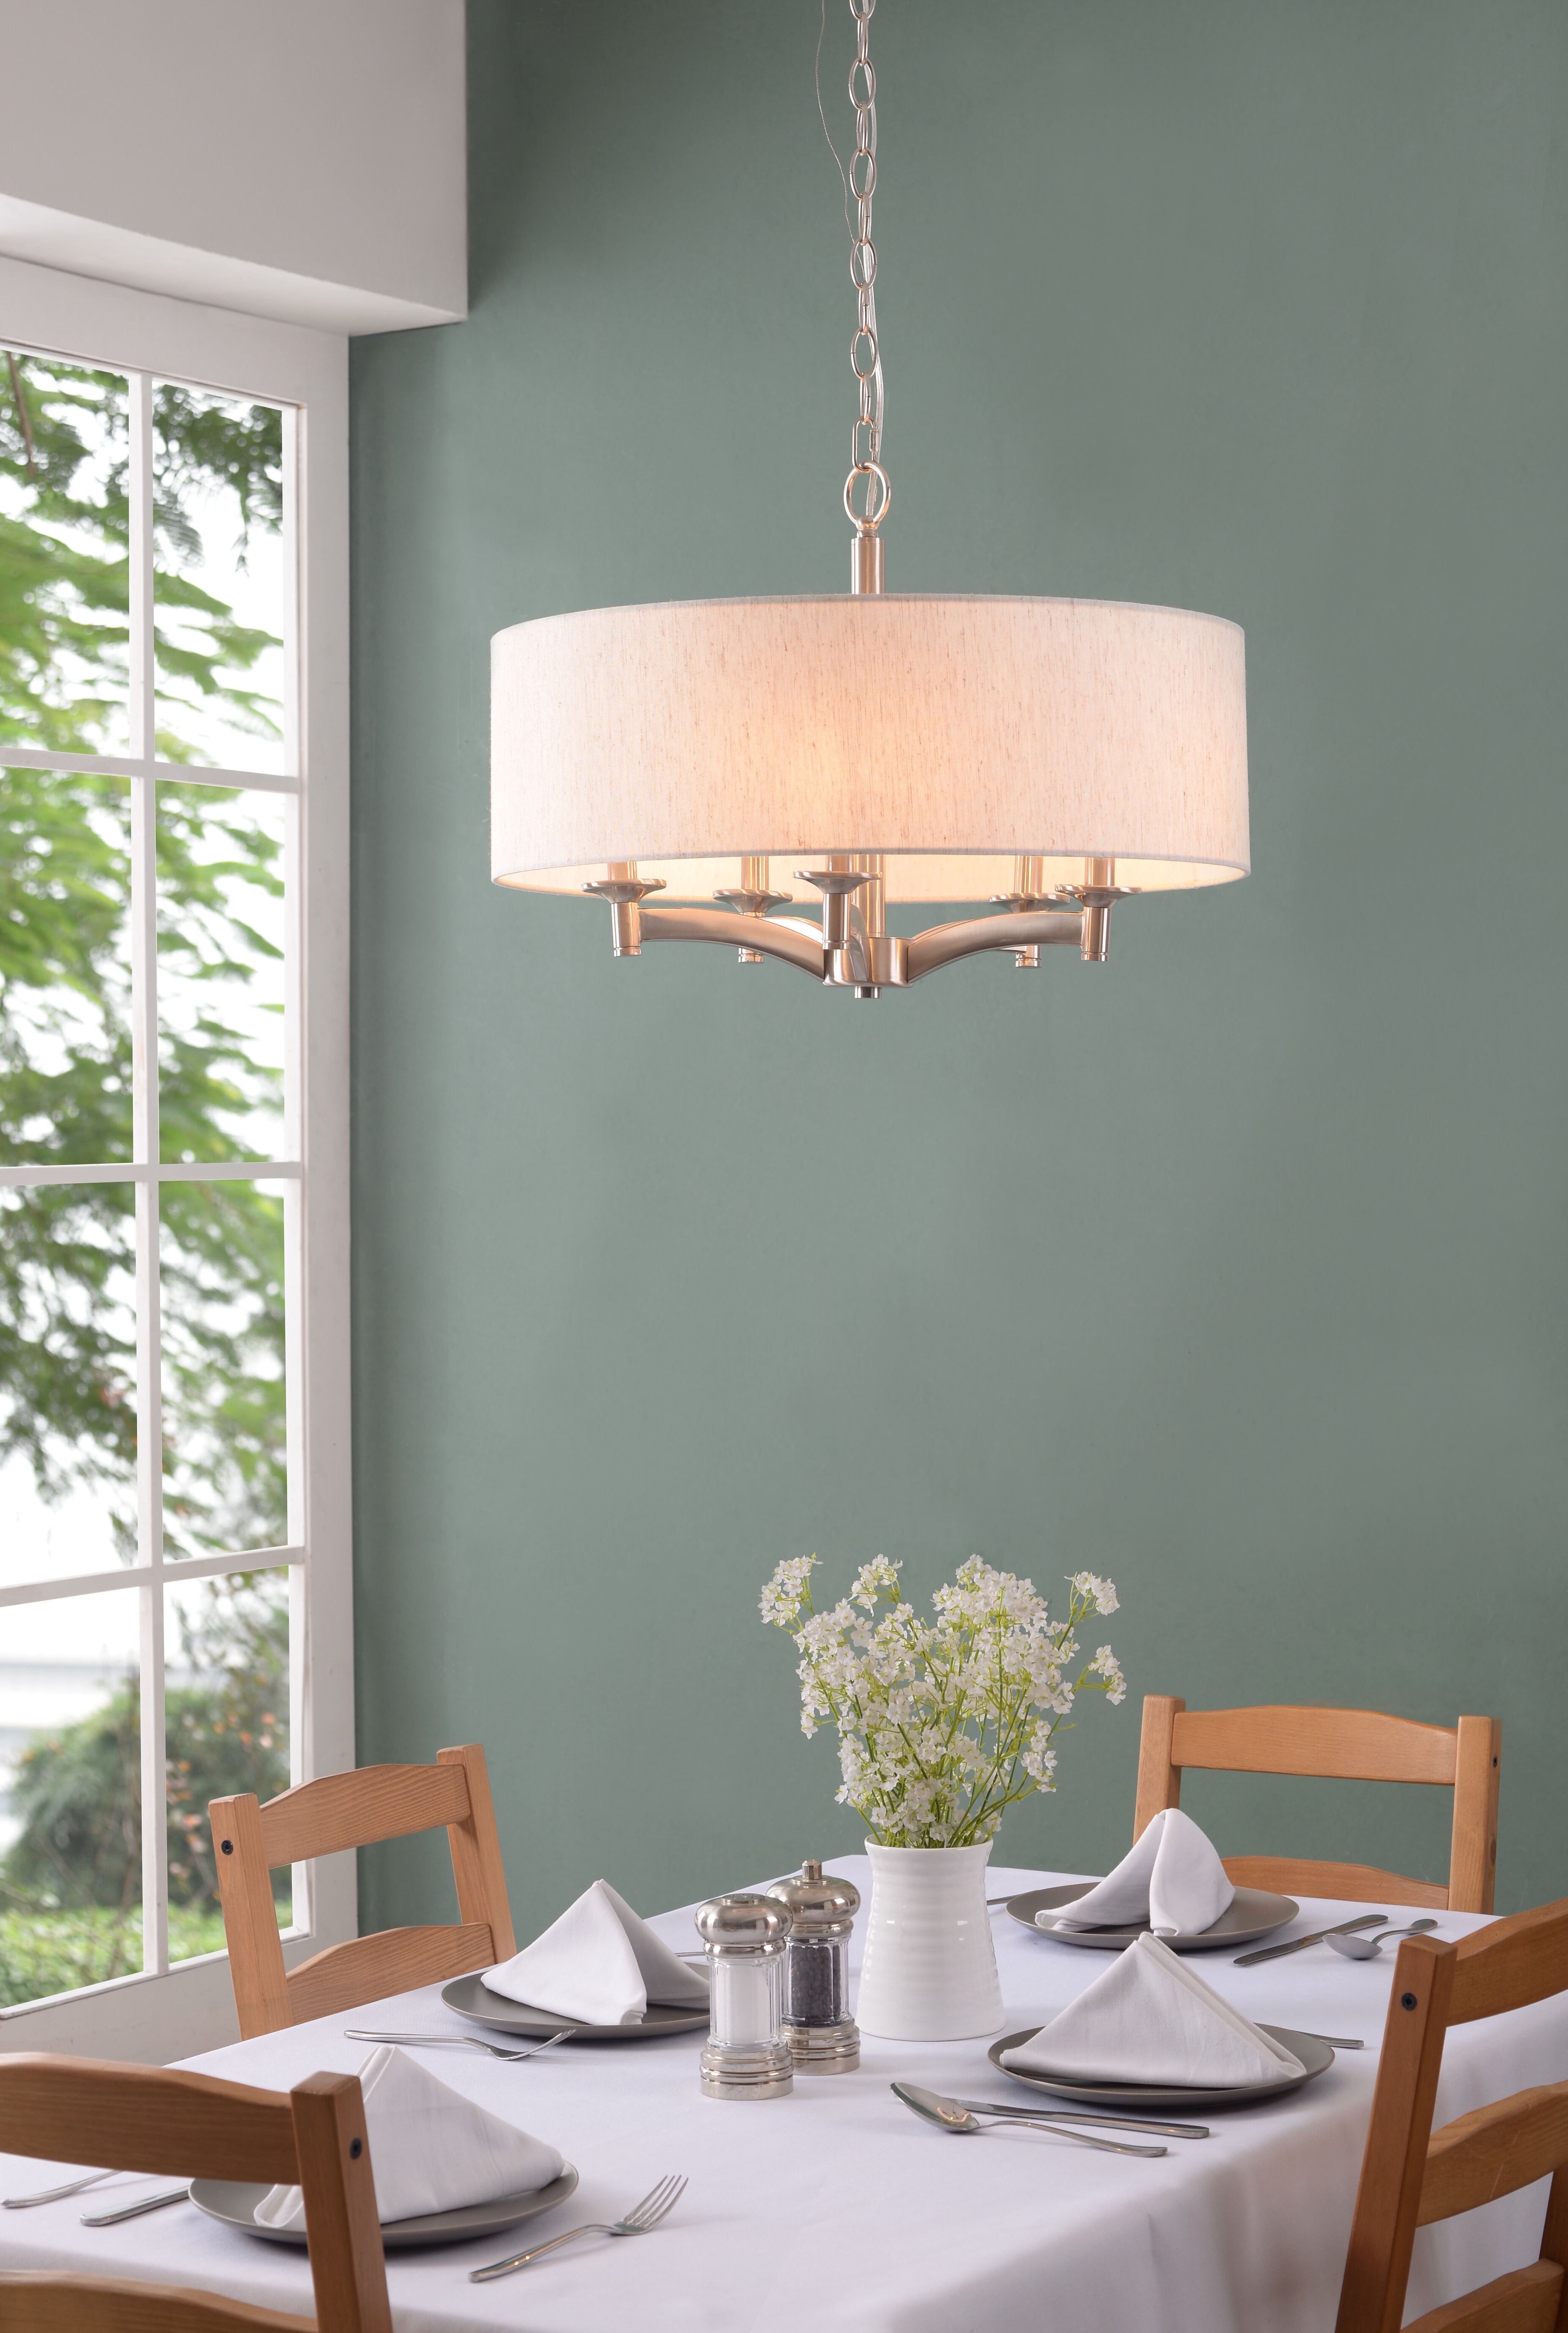 Widely Used Burton 5 Light Drum Chandeliers Regarding Harlan 5 Light Drum Chandelier (View 22 of 25)